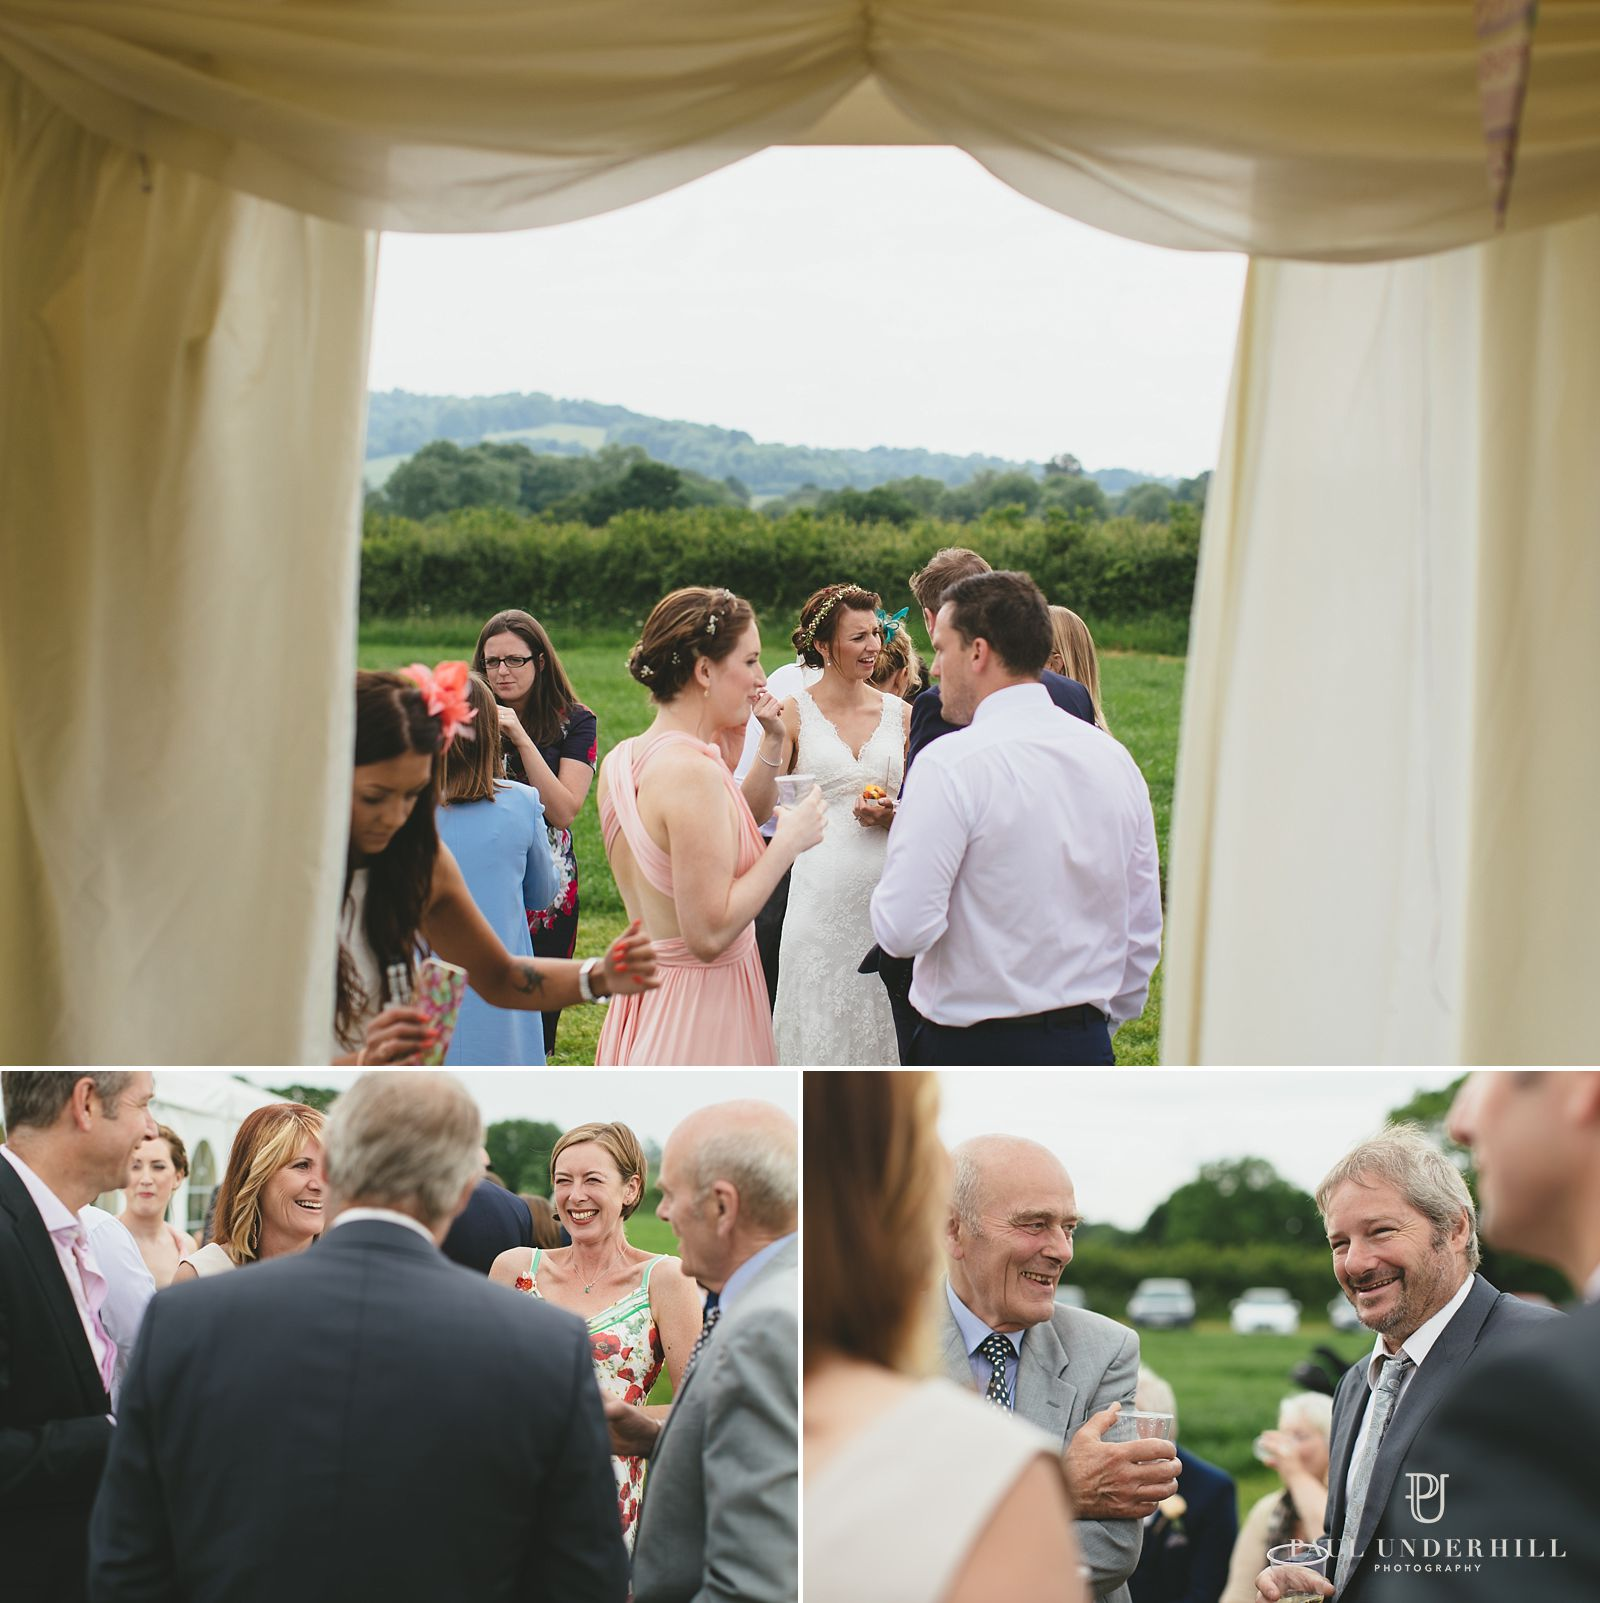 Outdoor wedding in rural Dorset